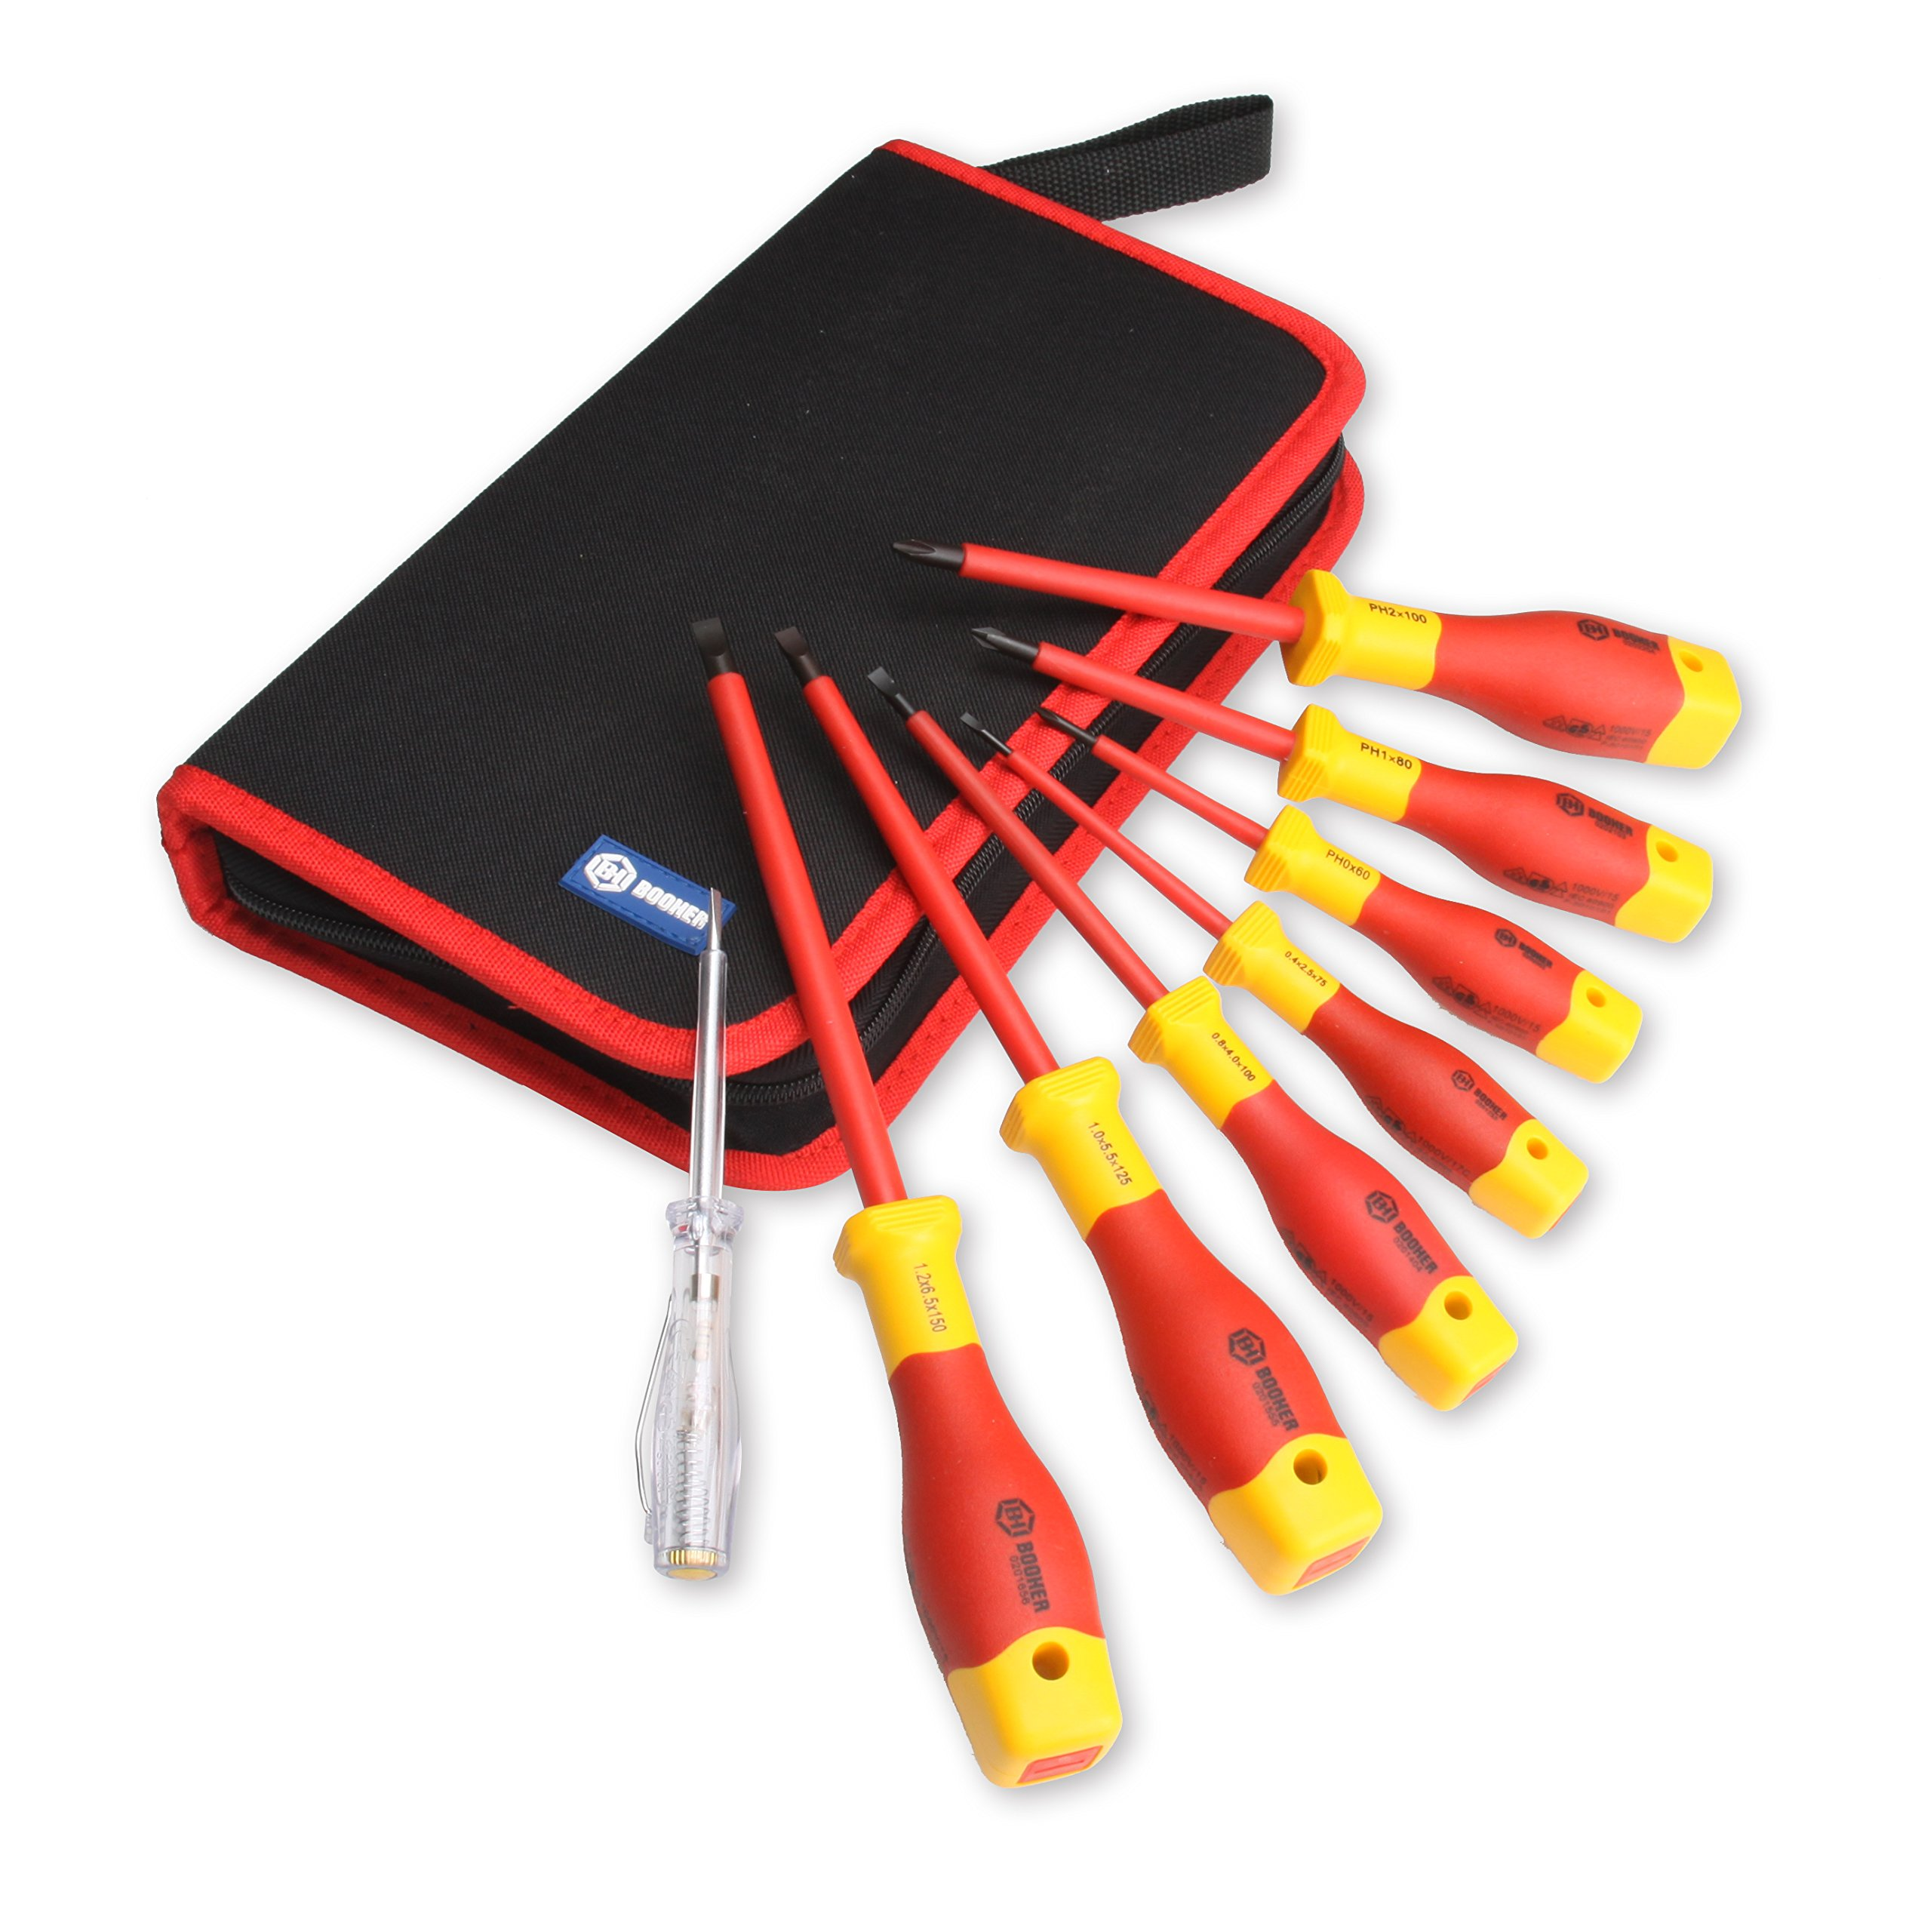 BOOHER 0200204 8-Piece 1000V Insulated Screwdriver Set by BOOHER